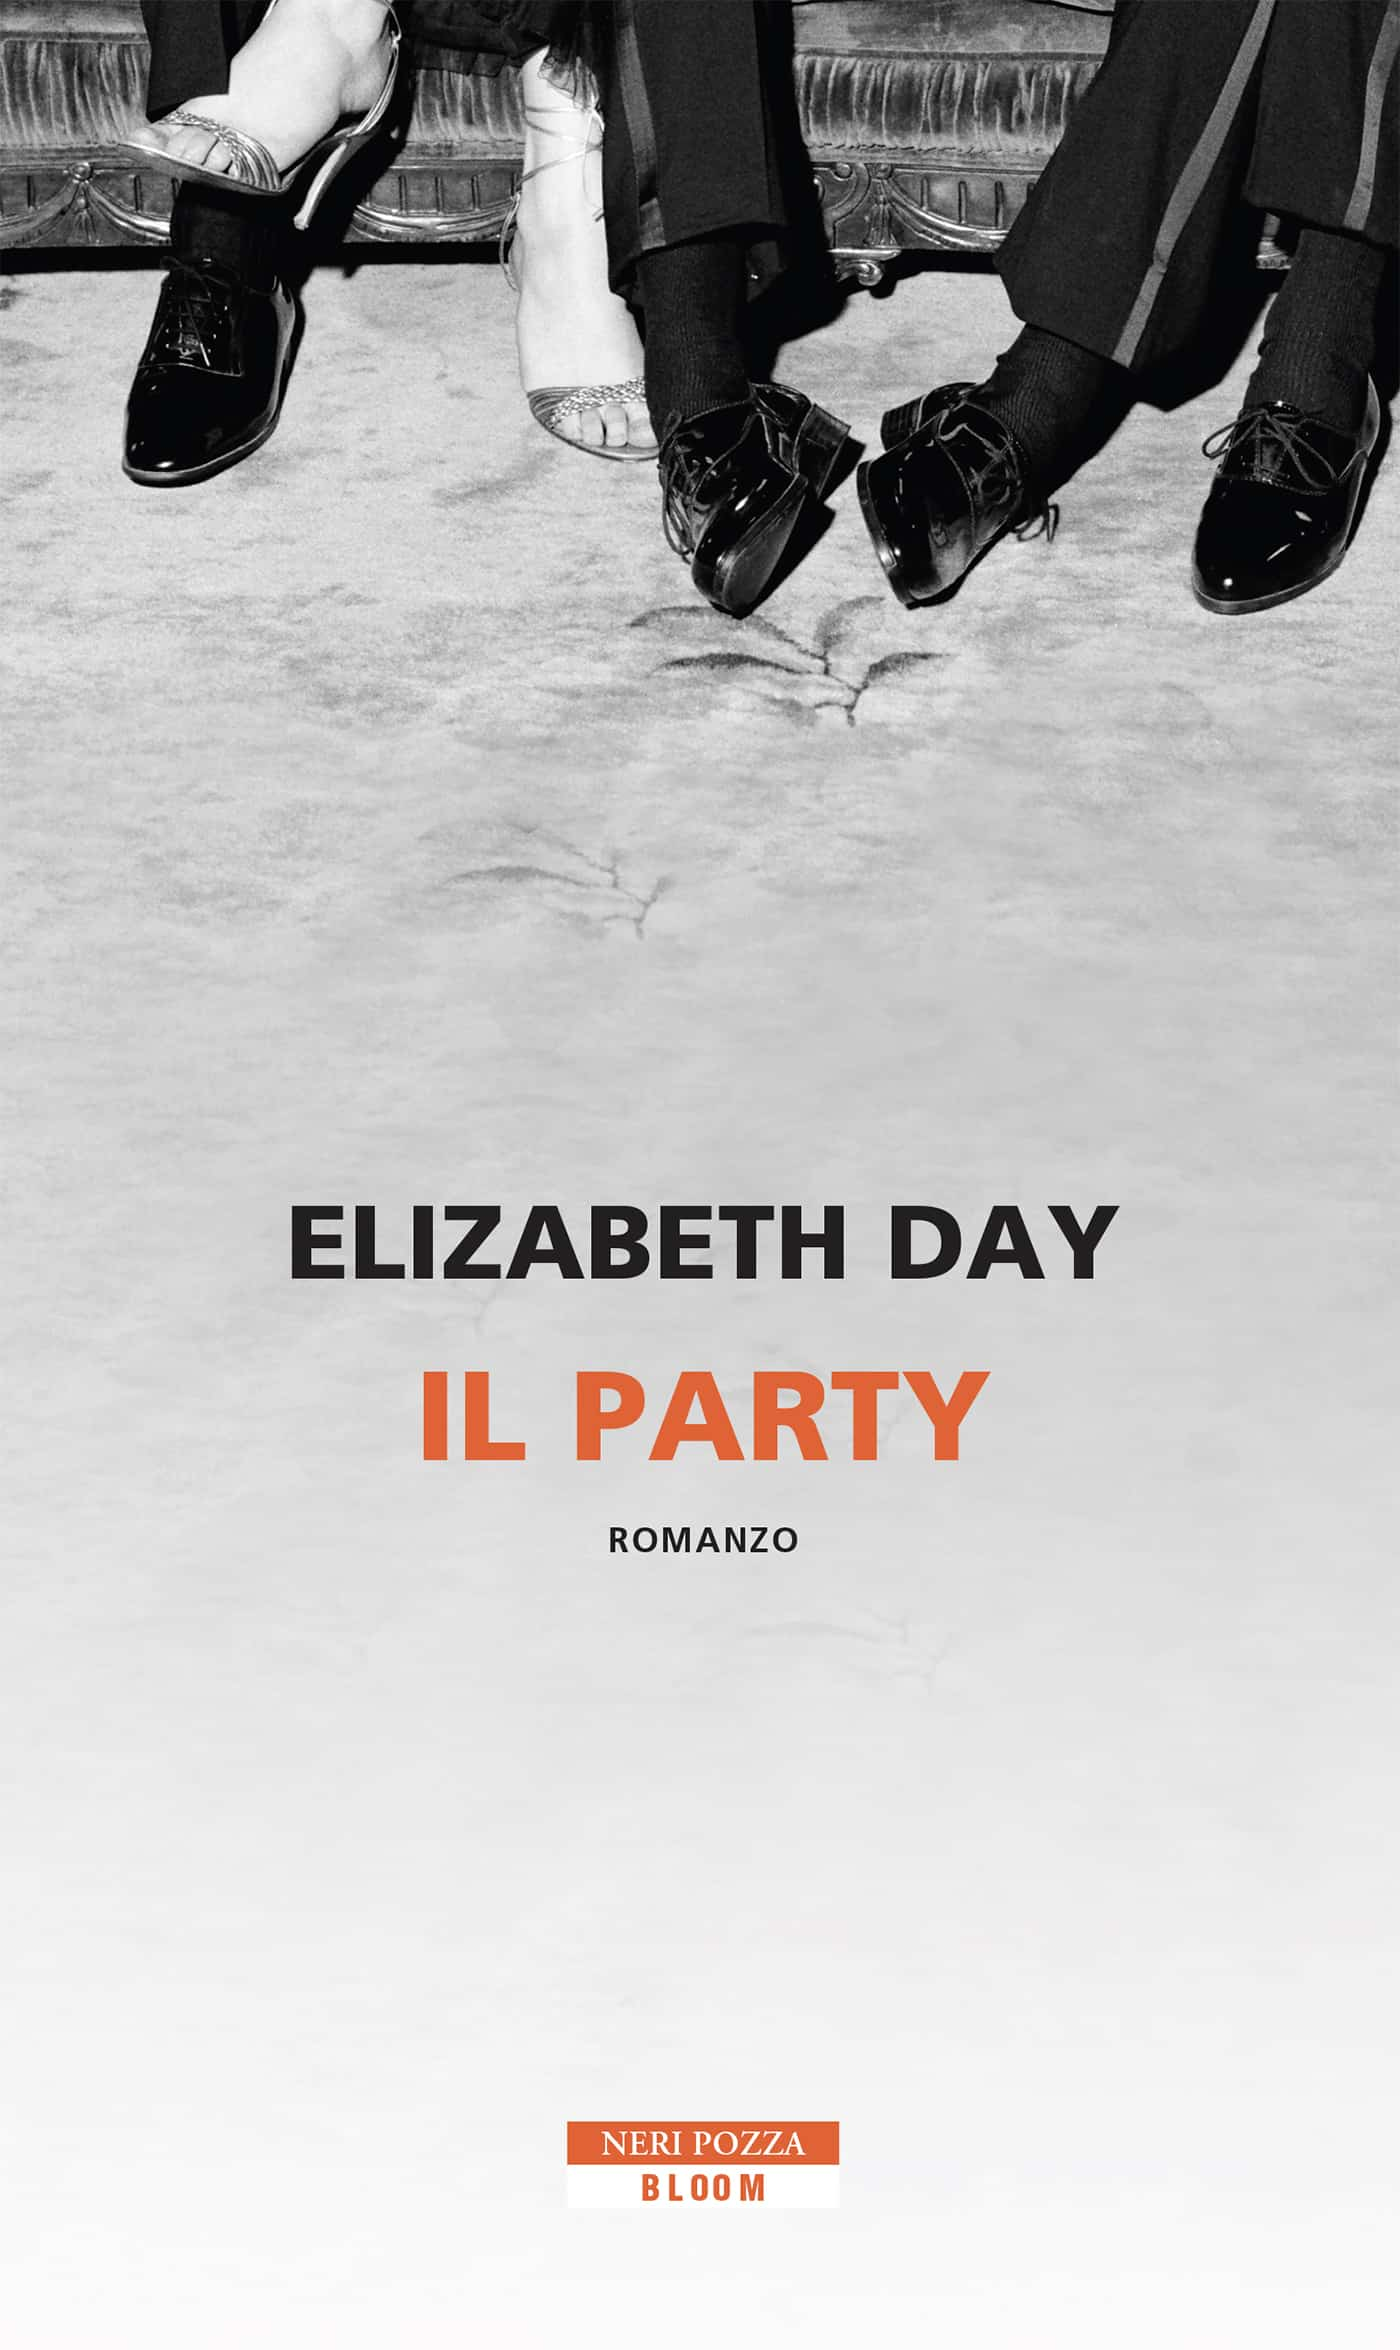 Elisabeth Day, Il party, Neri Pozza